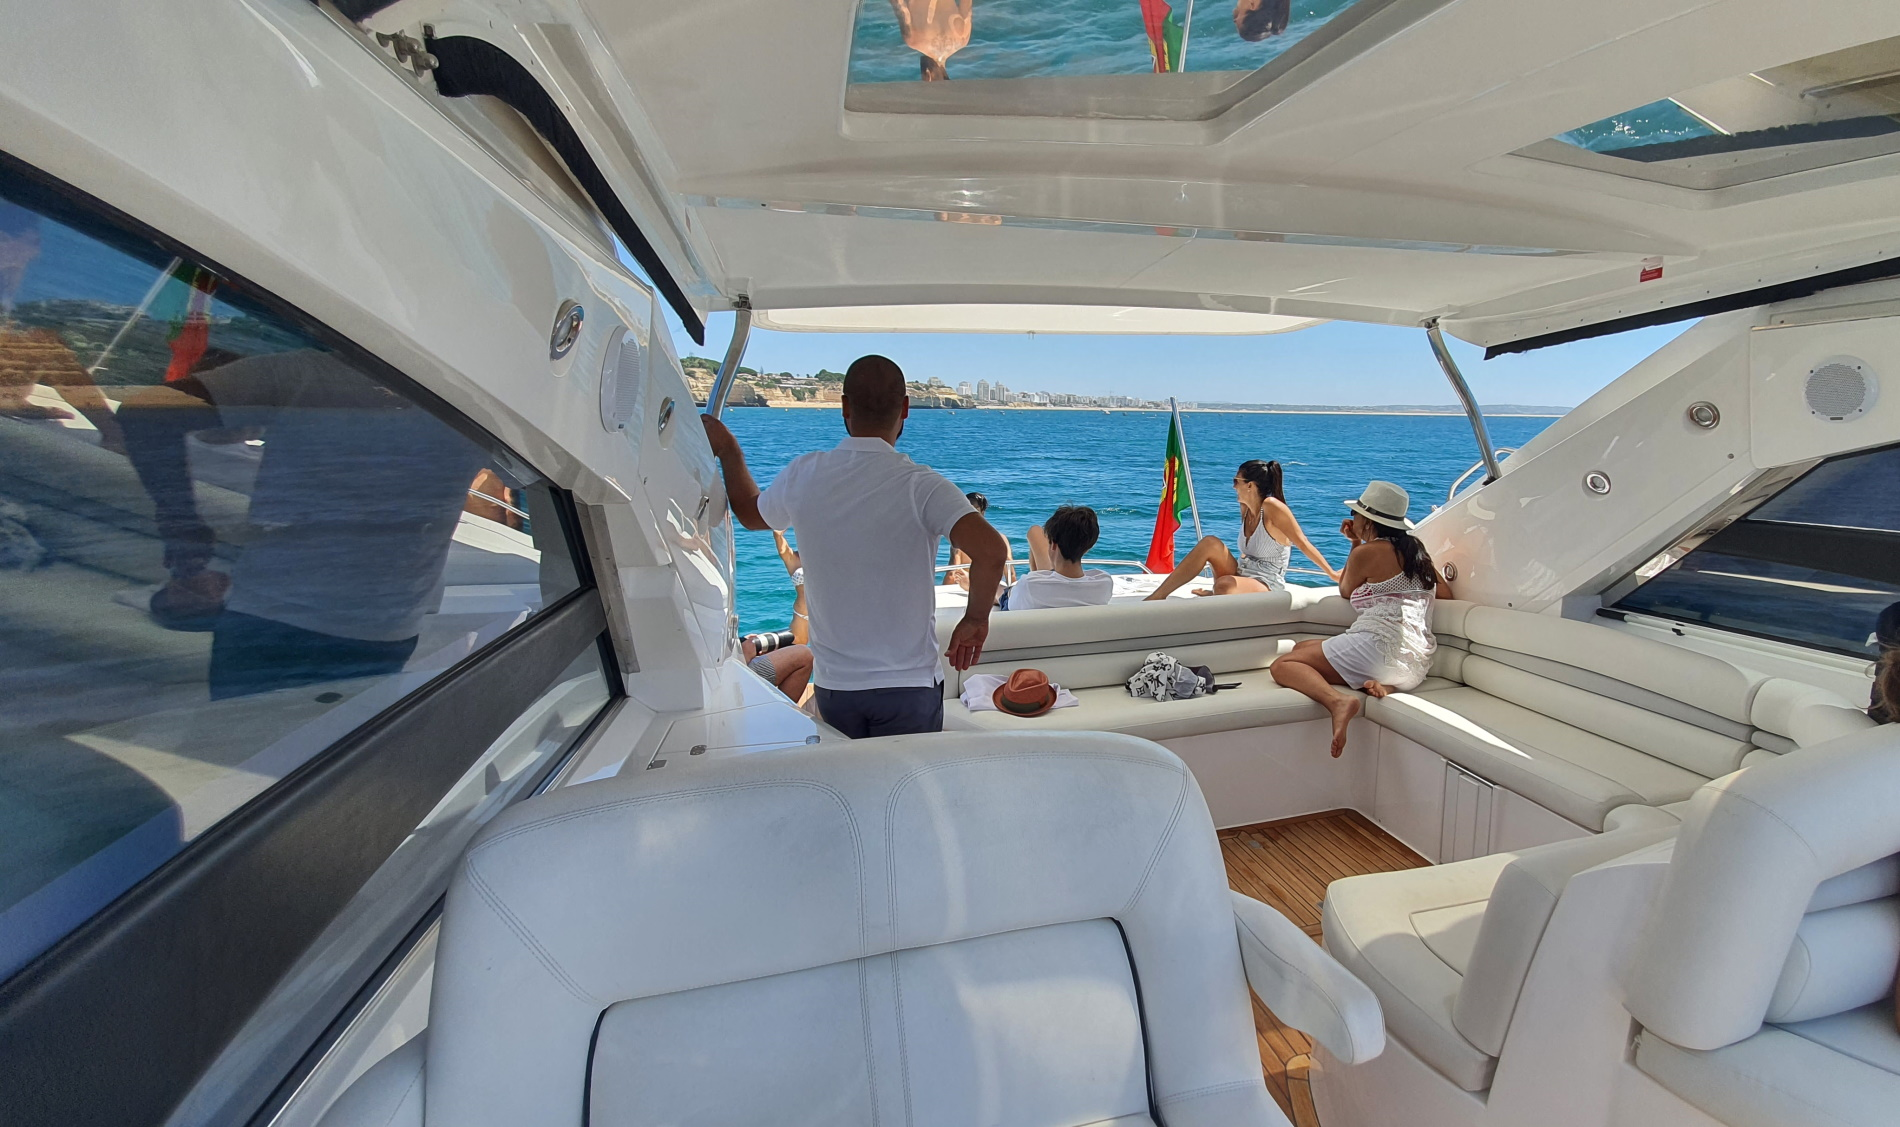 Come on board the yacht in Albufeira